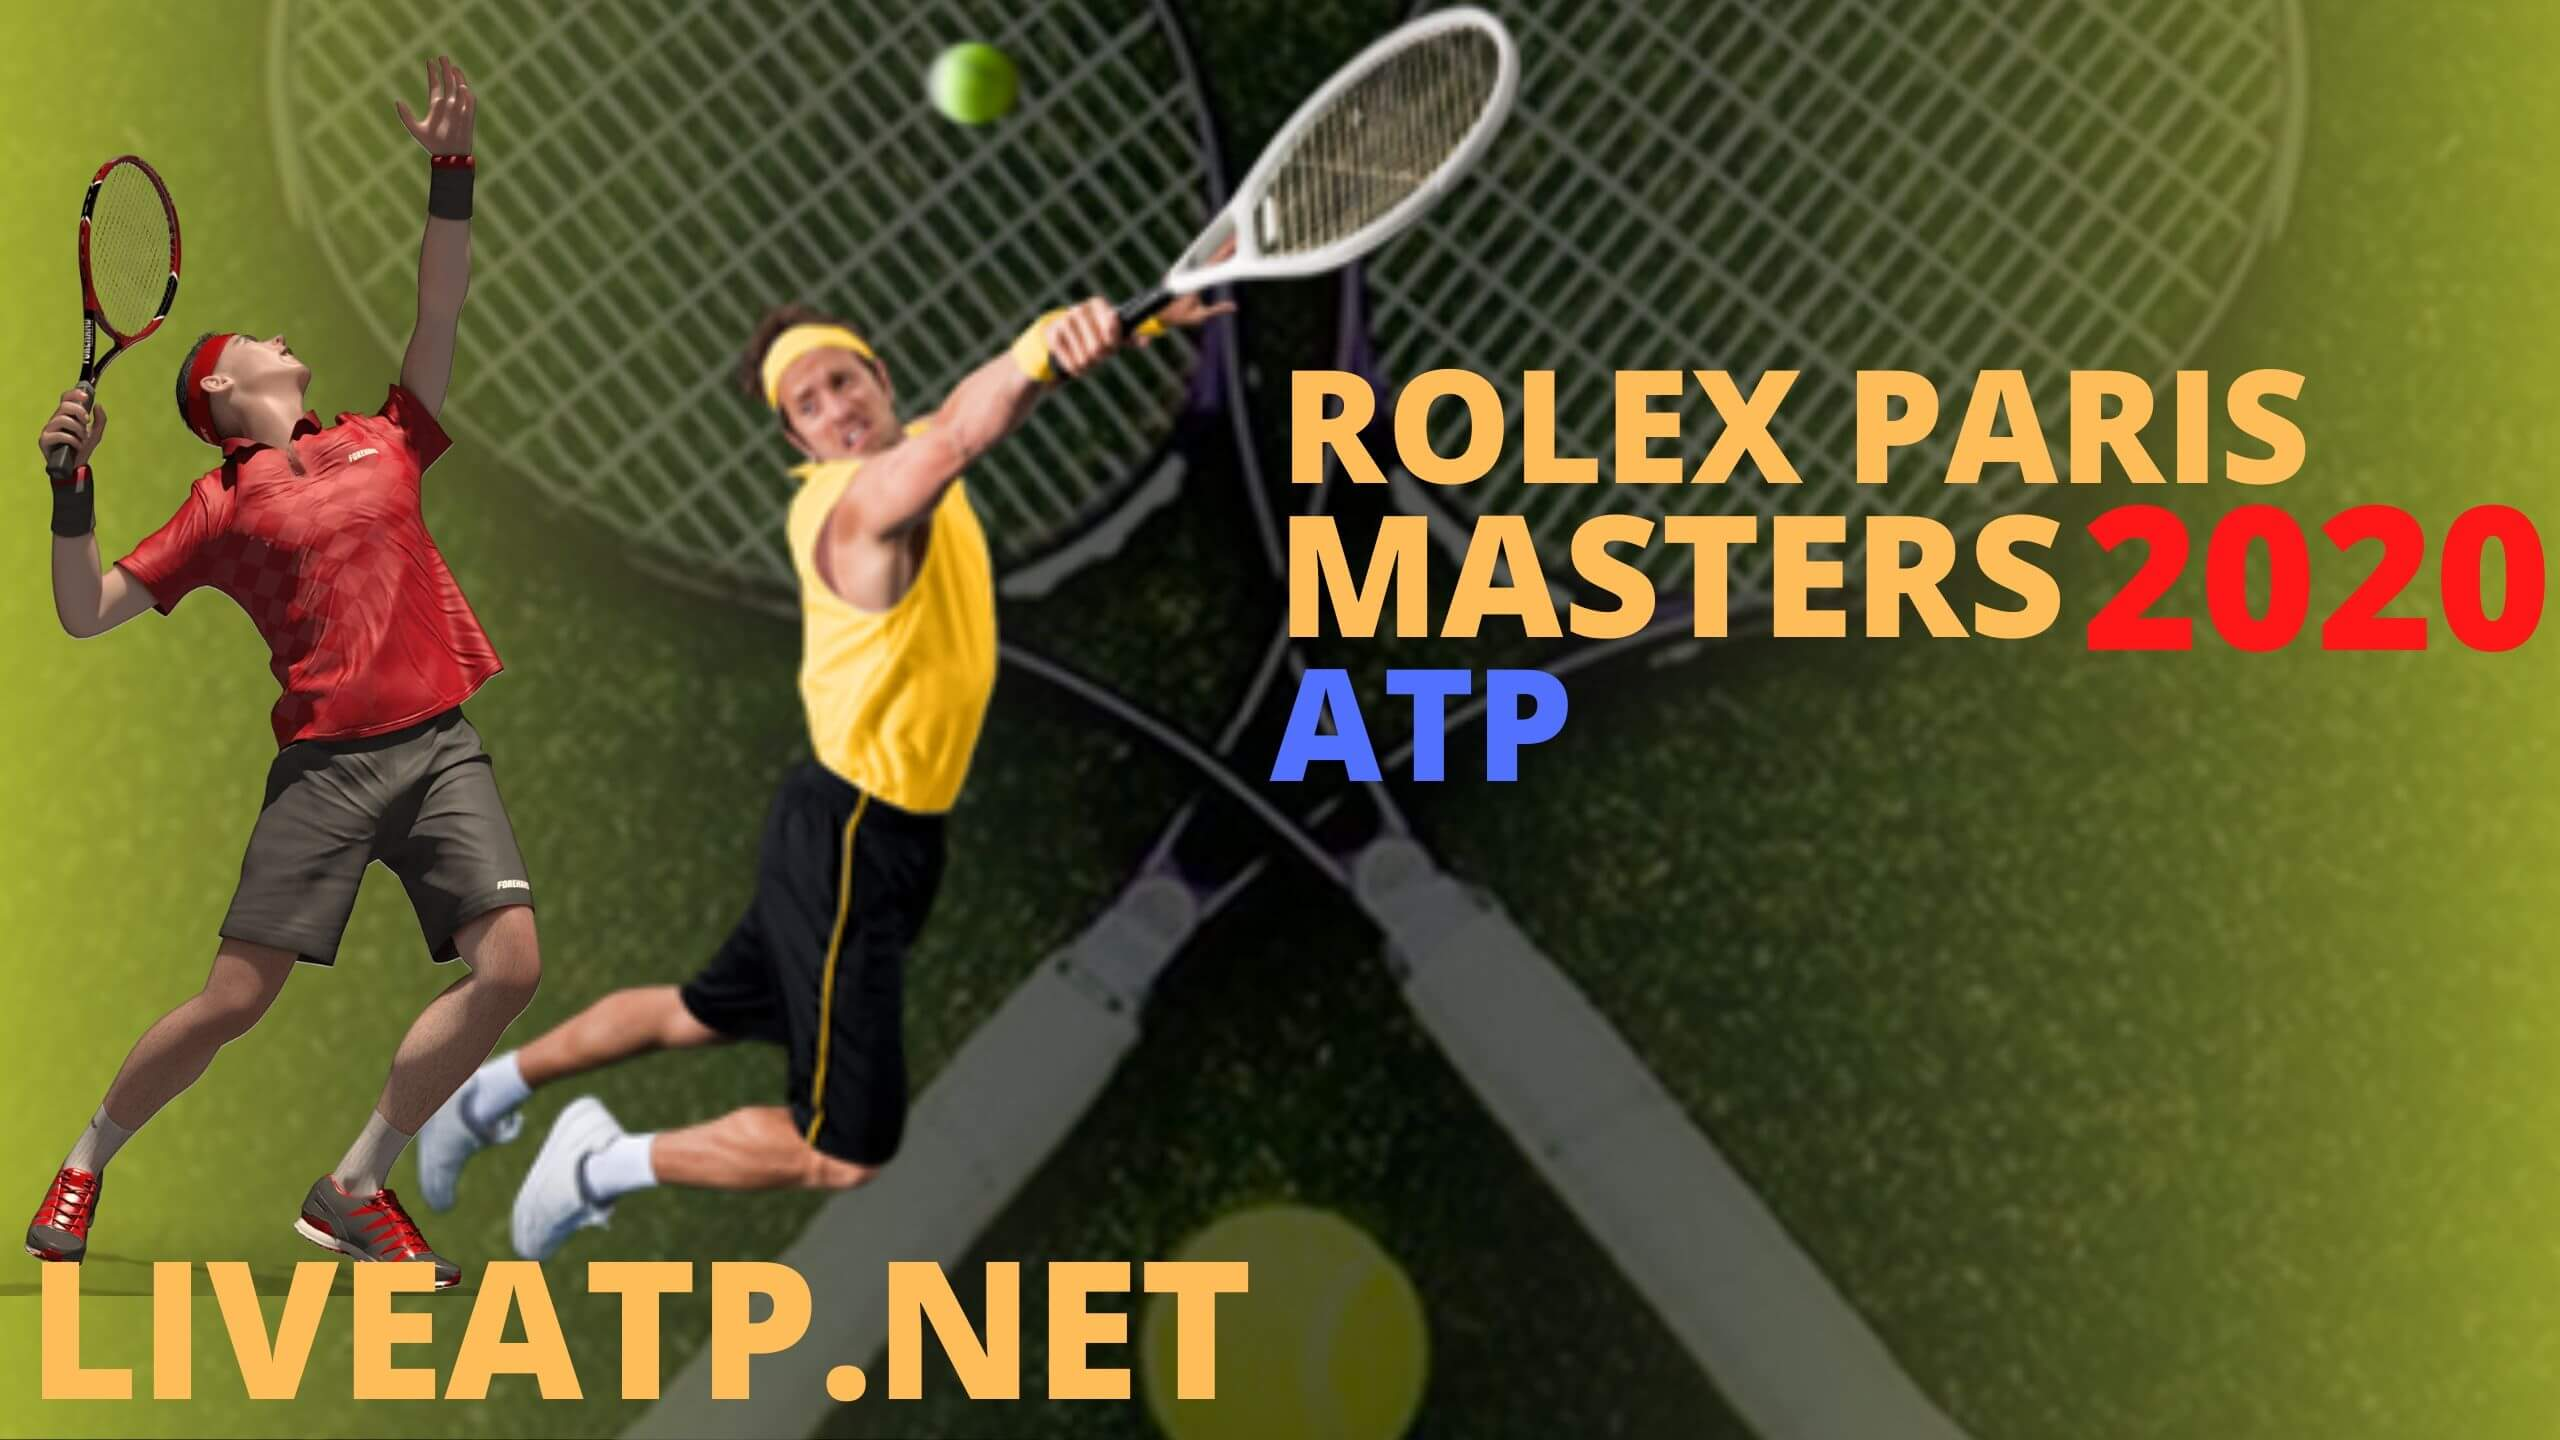 Rolex Paris Masters Live Stream 2020 | Day 2